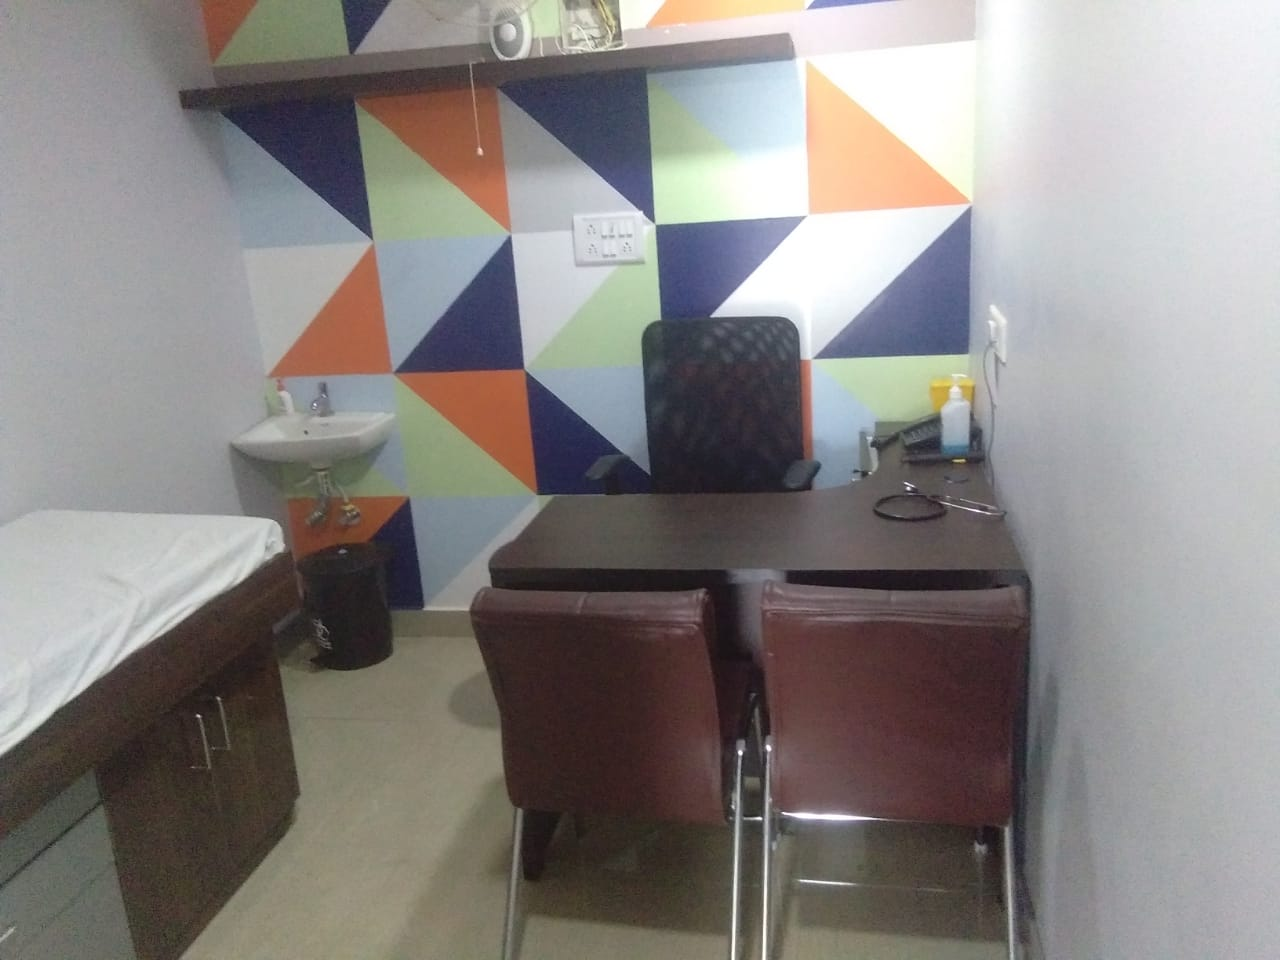 Multispeciality Clinic Serving All Specialty in a Prime Location for Sale in Bangalore